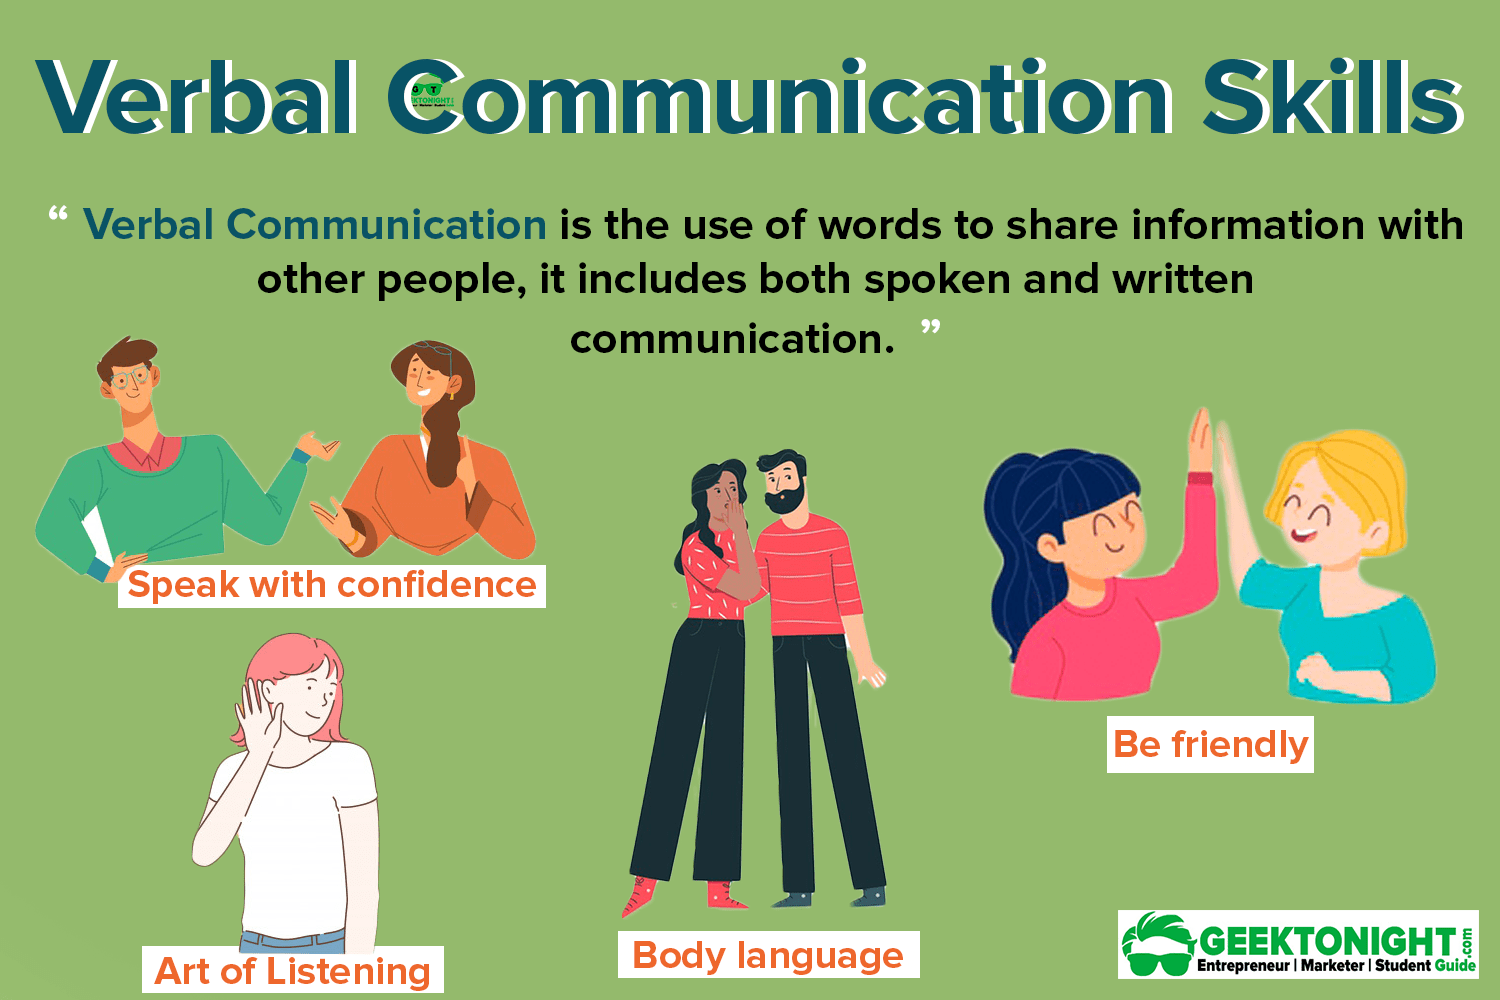 10 Verbal Communication Skills Worth Mastering